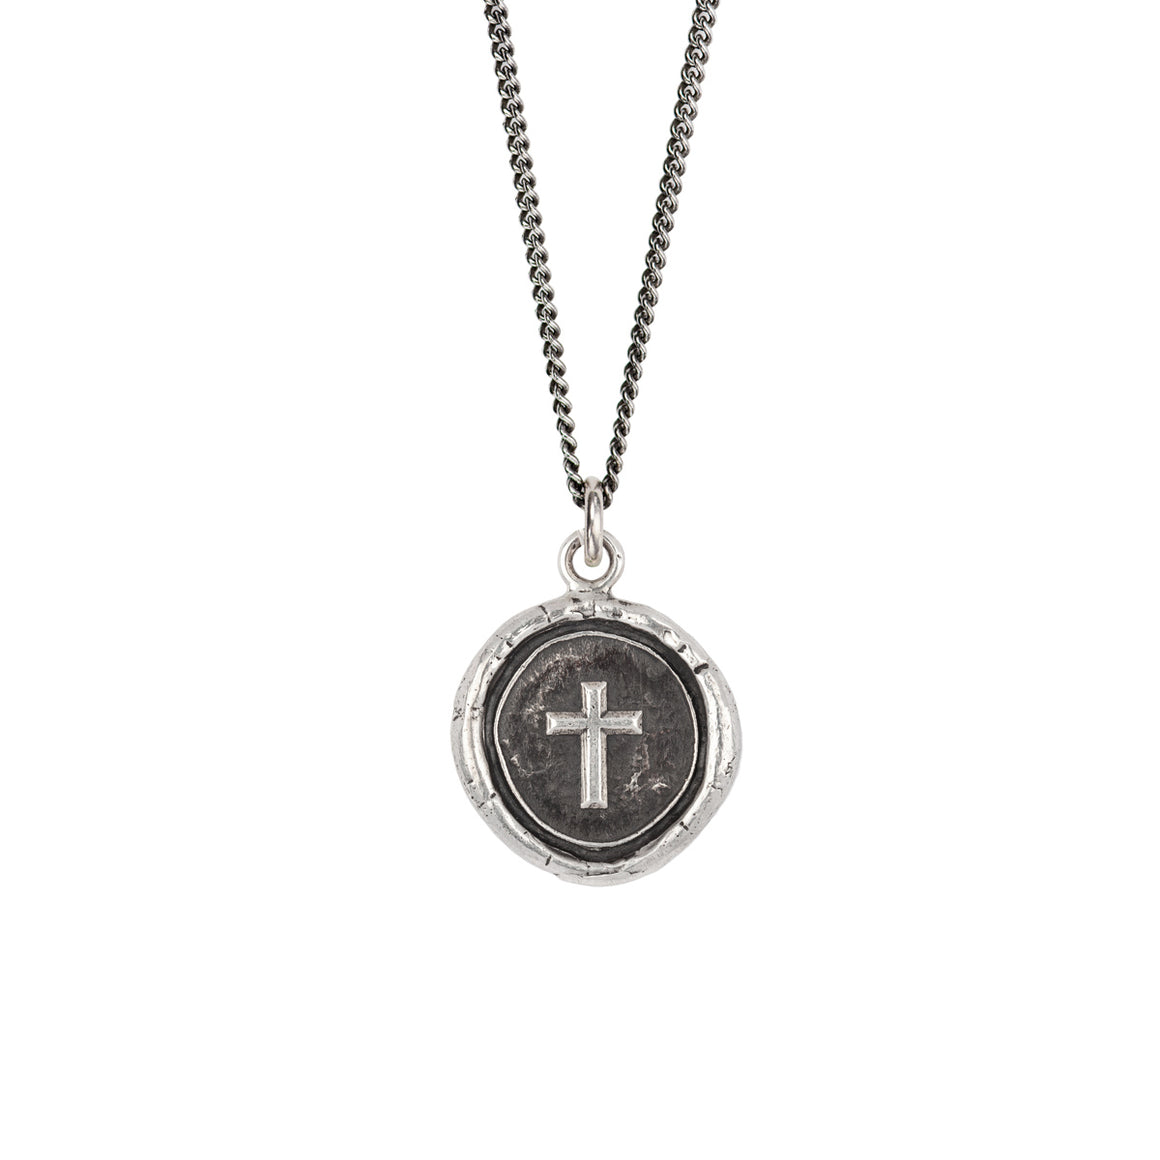 PYRRHA CROSS TALISMAN NECKLACE